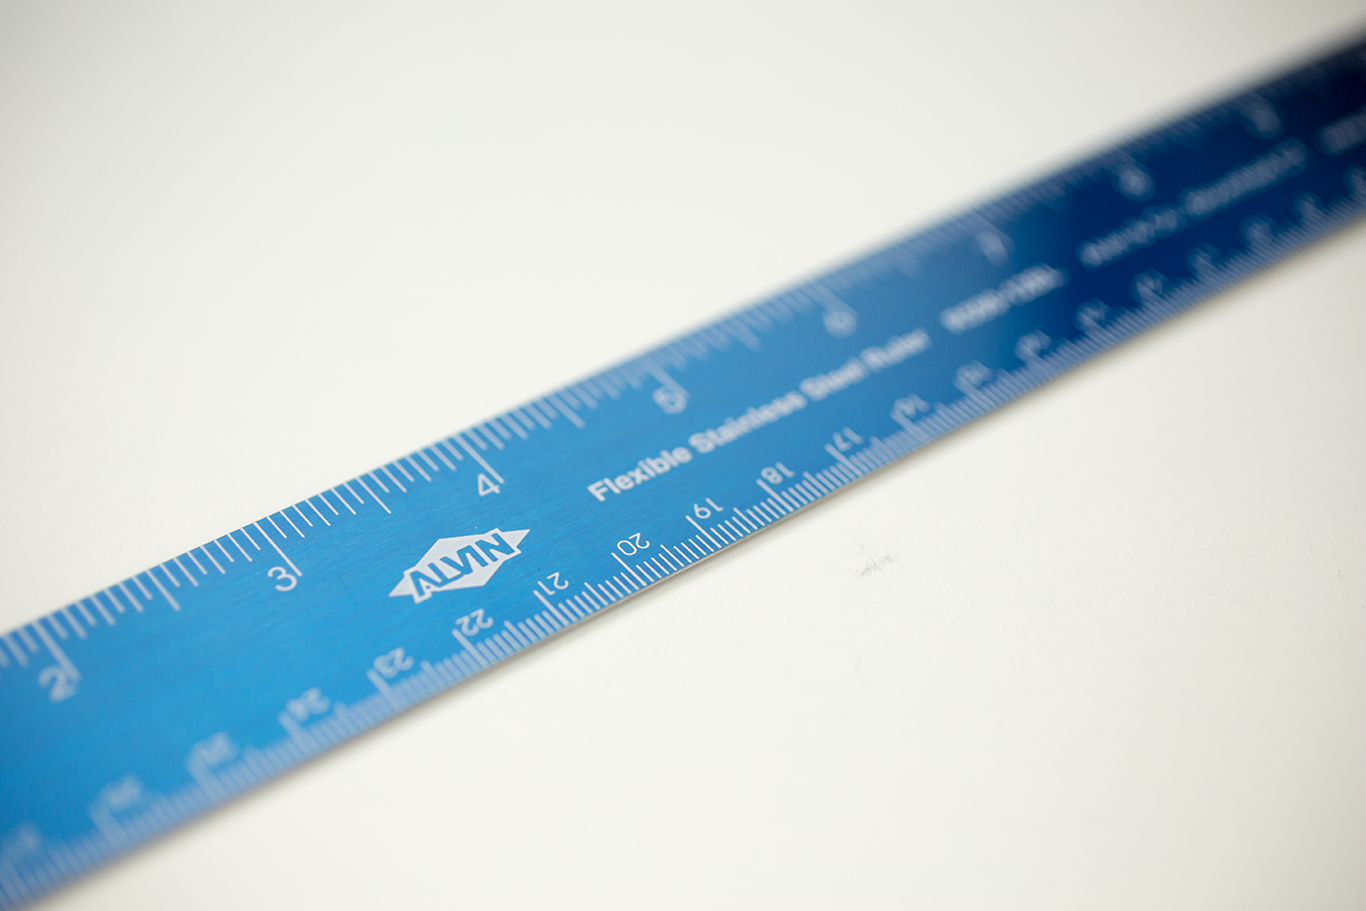 "Alvin® 12"" Flexible Stainless Steel Ruler Blue Item No. R590-12BL"